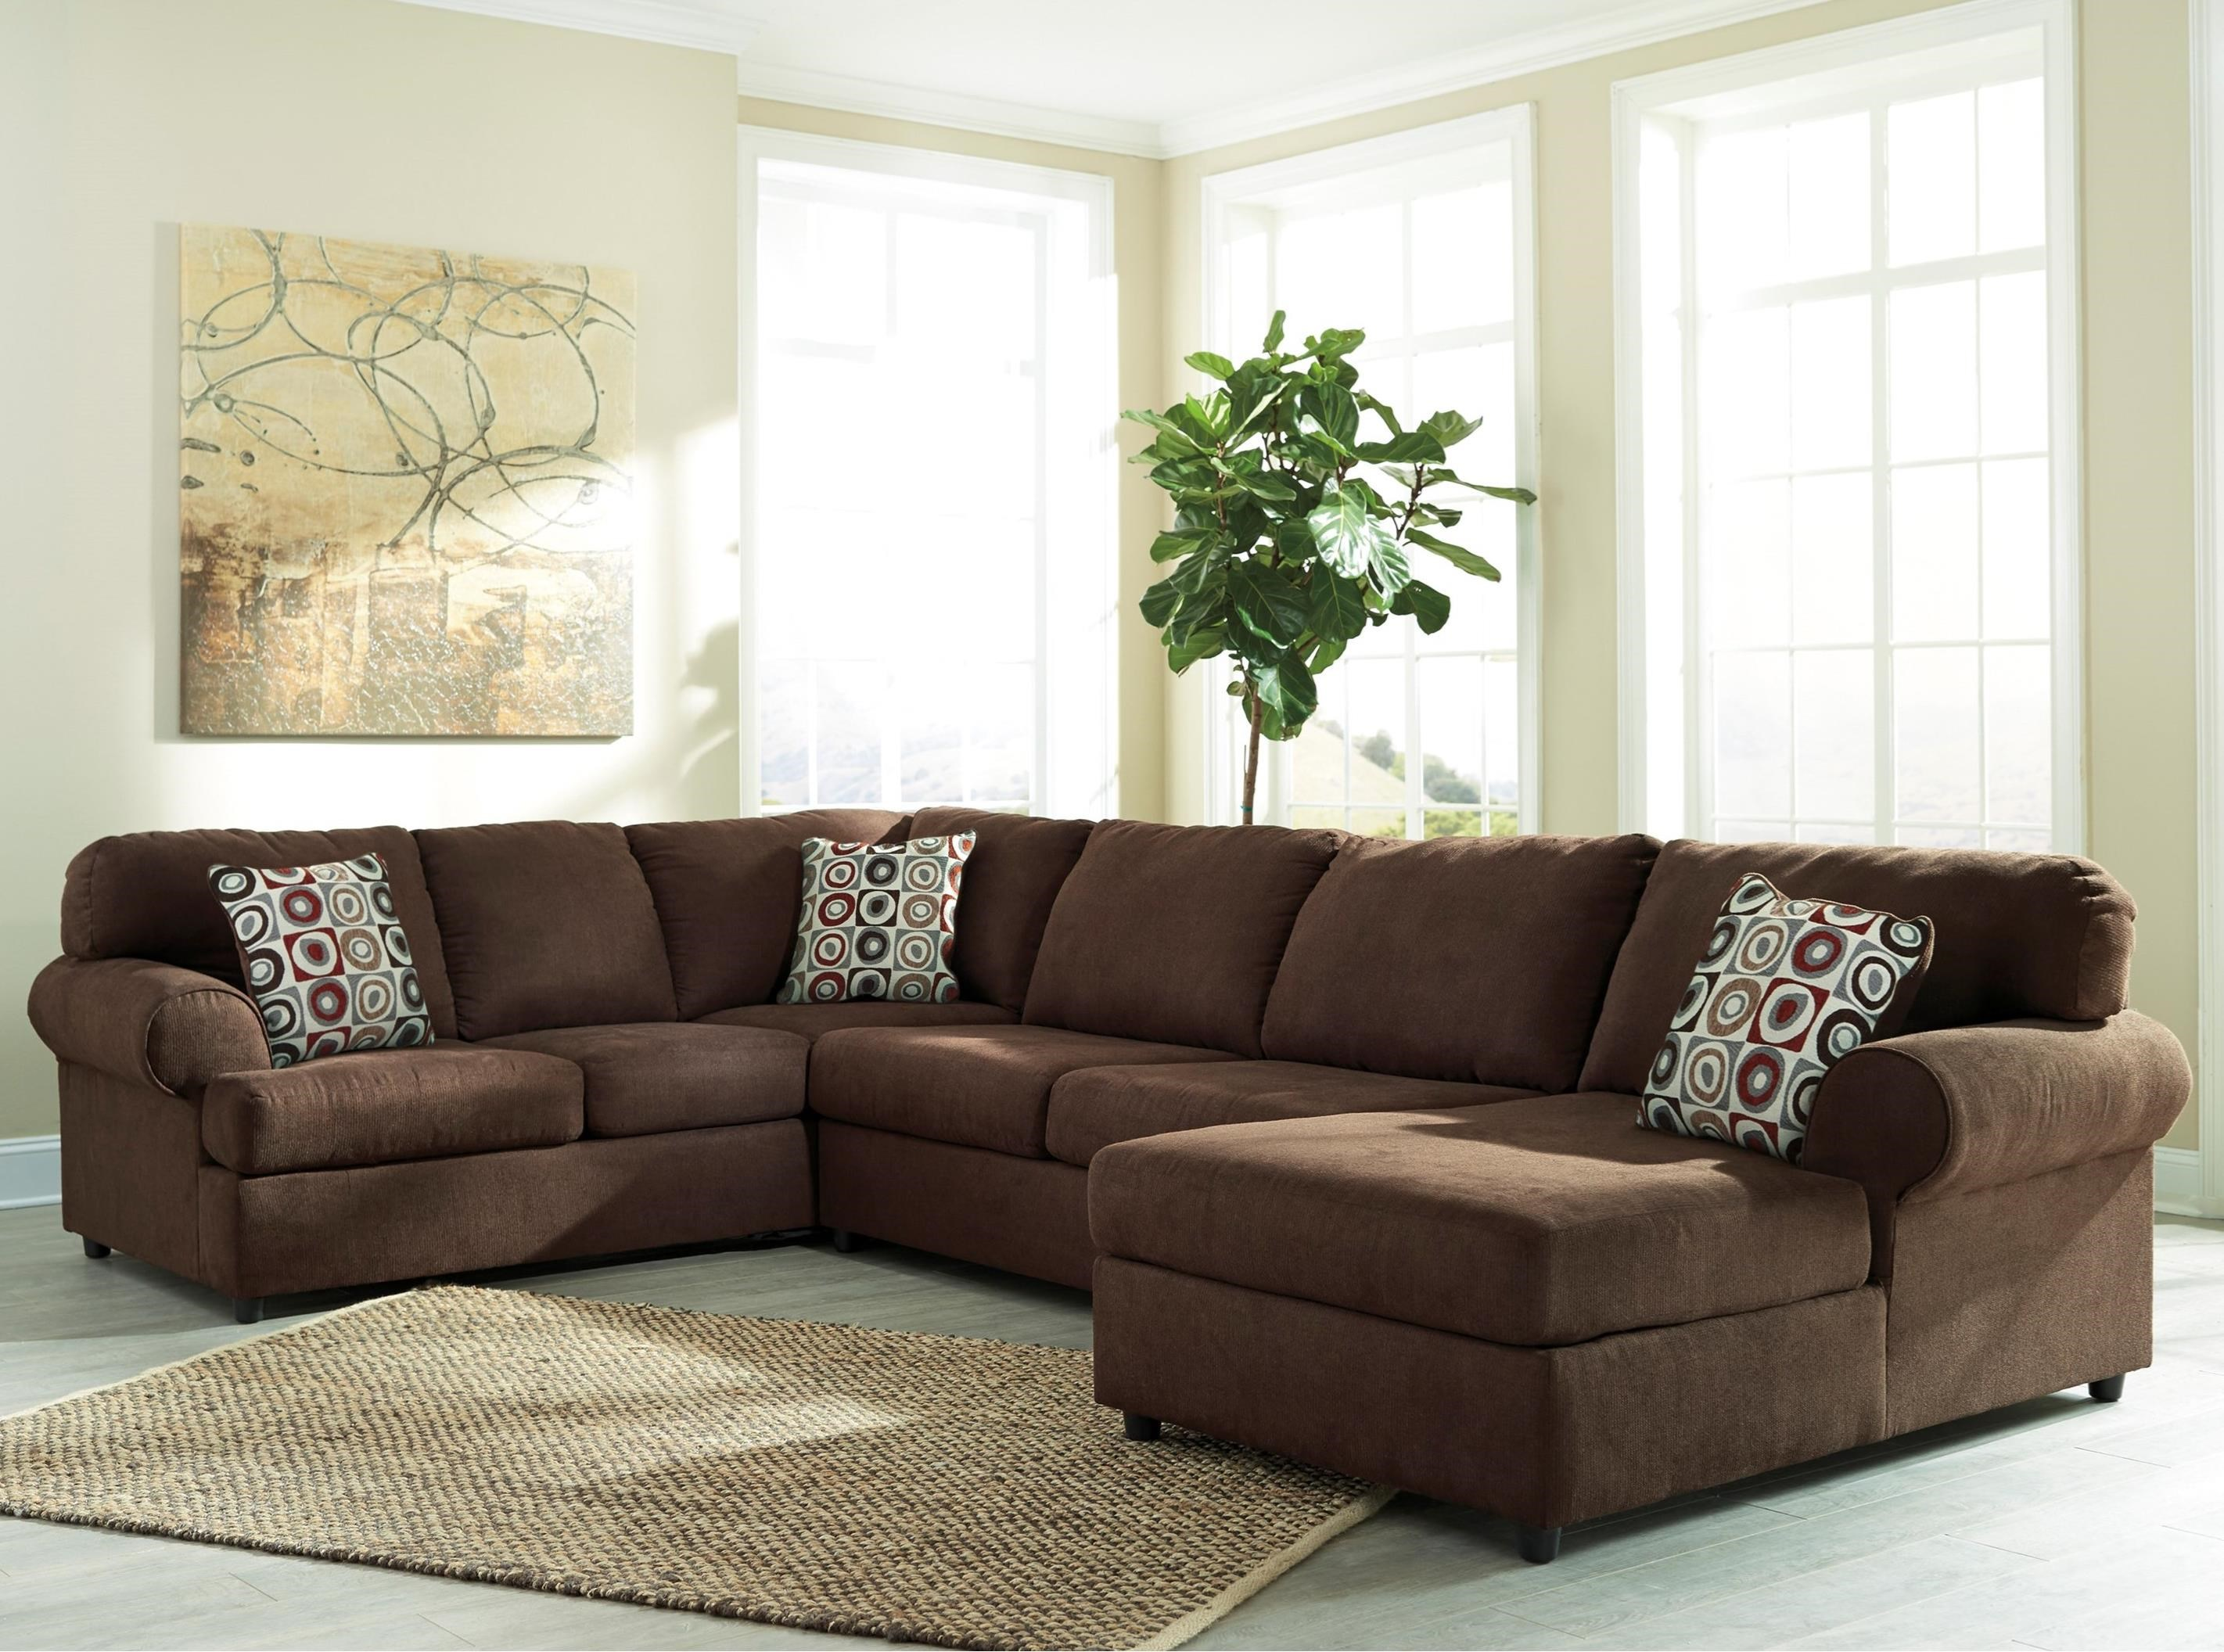 3 Piece Sectional With Right Chaise By Signature Design By Ashley